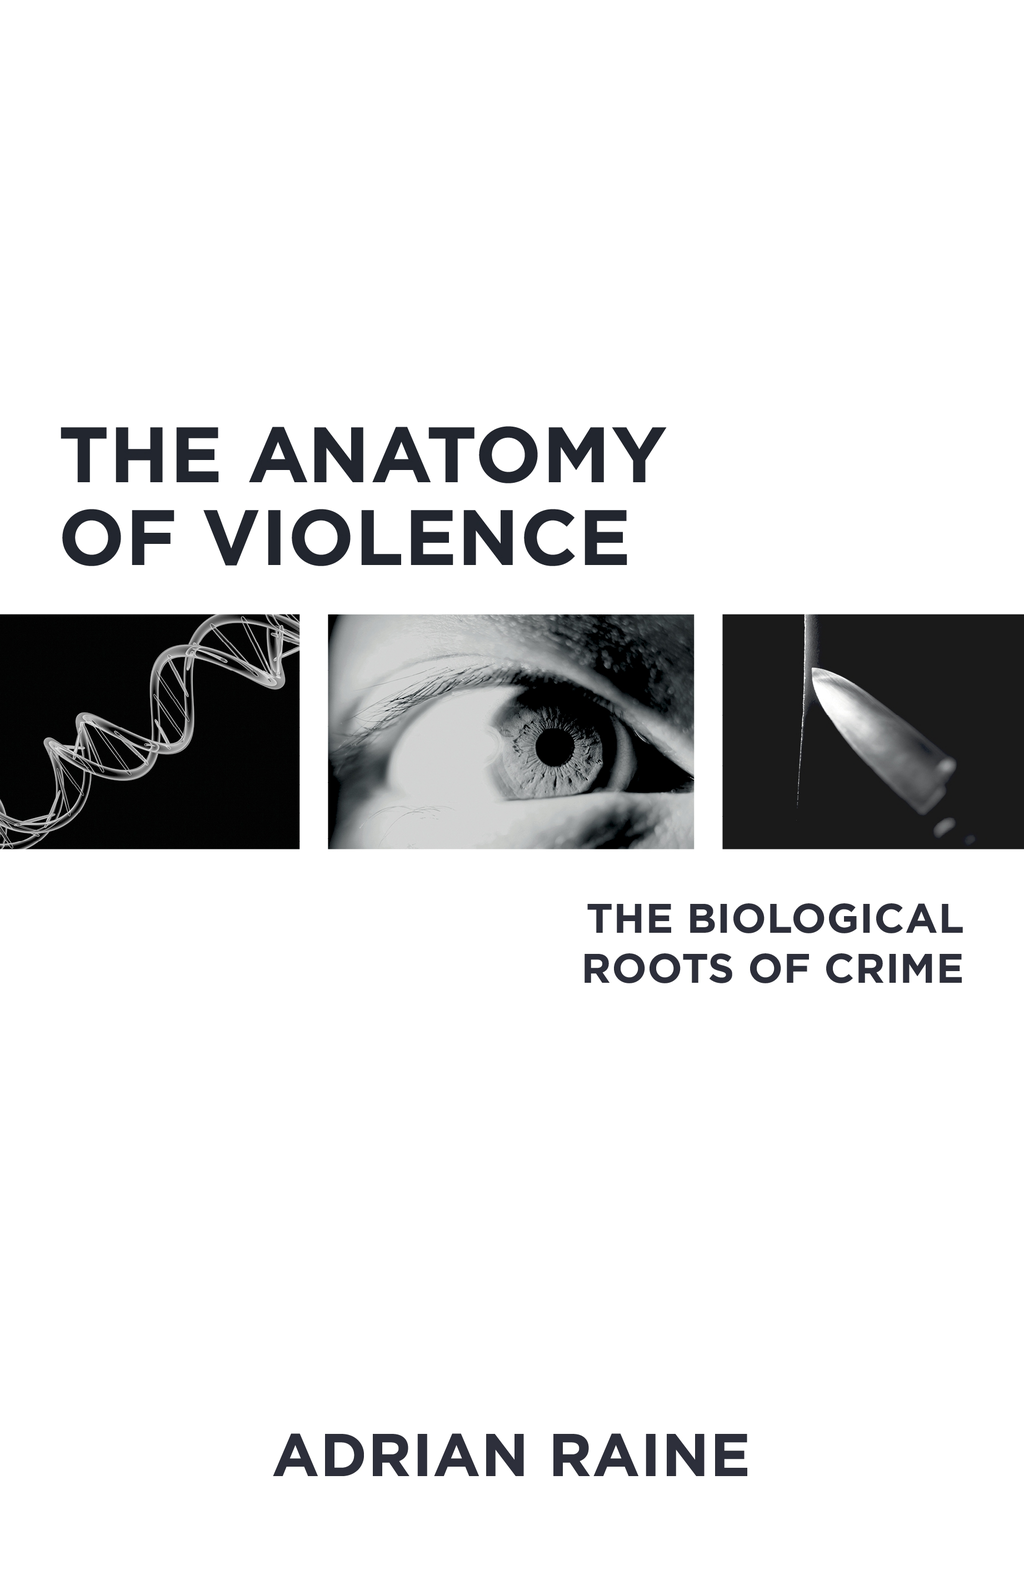 The Anatomy of Violence The Biological Roots of Crime